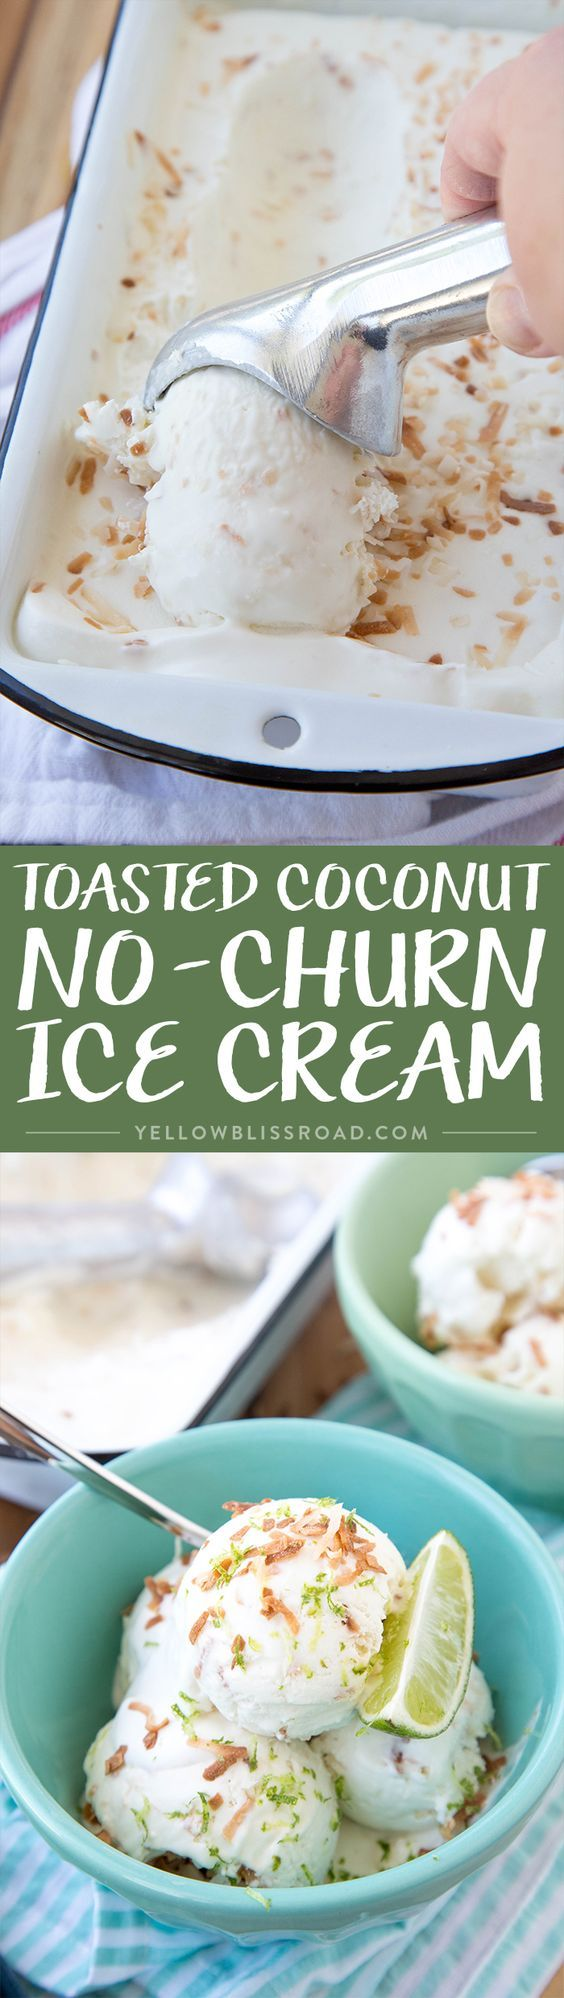 Toasted Coconut No Churn Ice Cream - Just 4 delicious ingredients and no ice cream maker required!